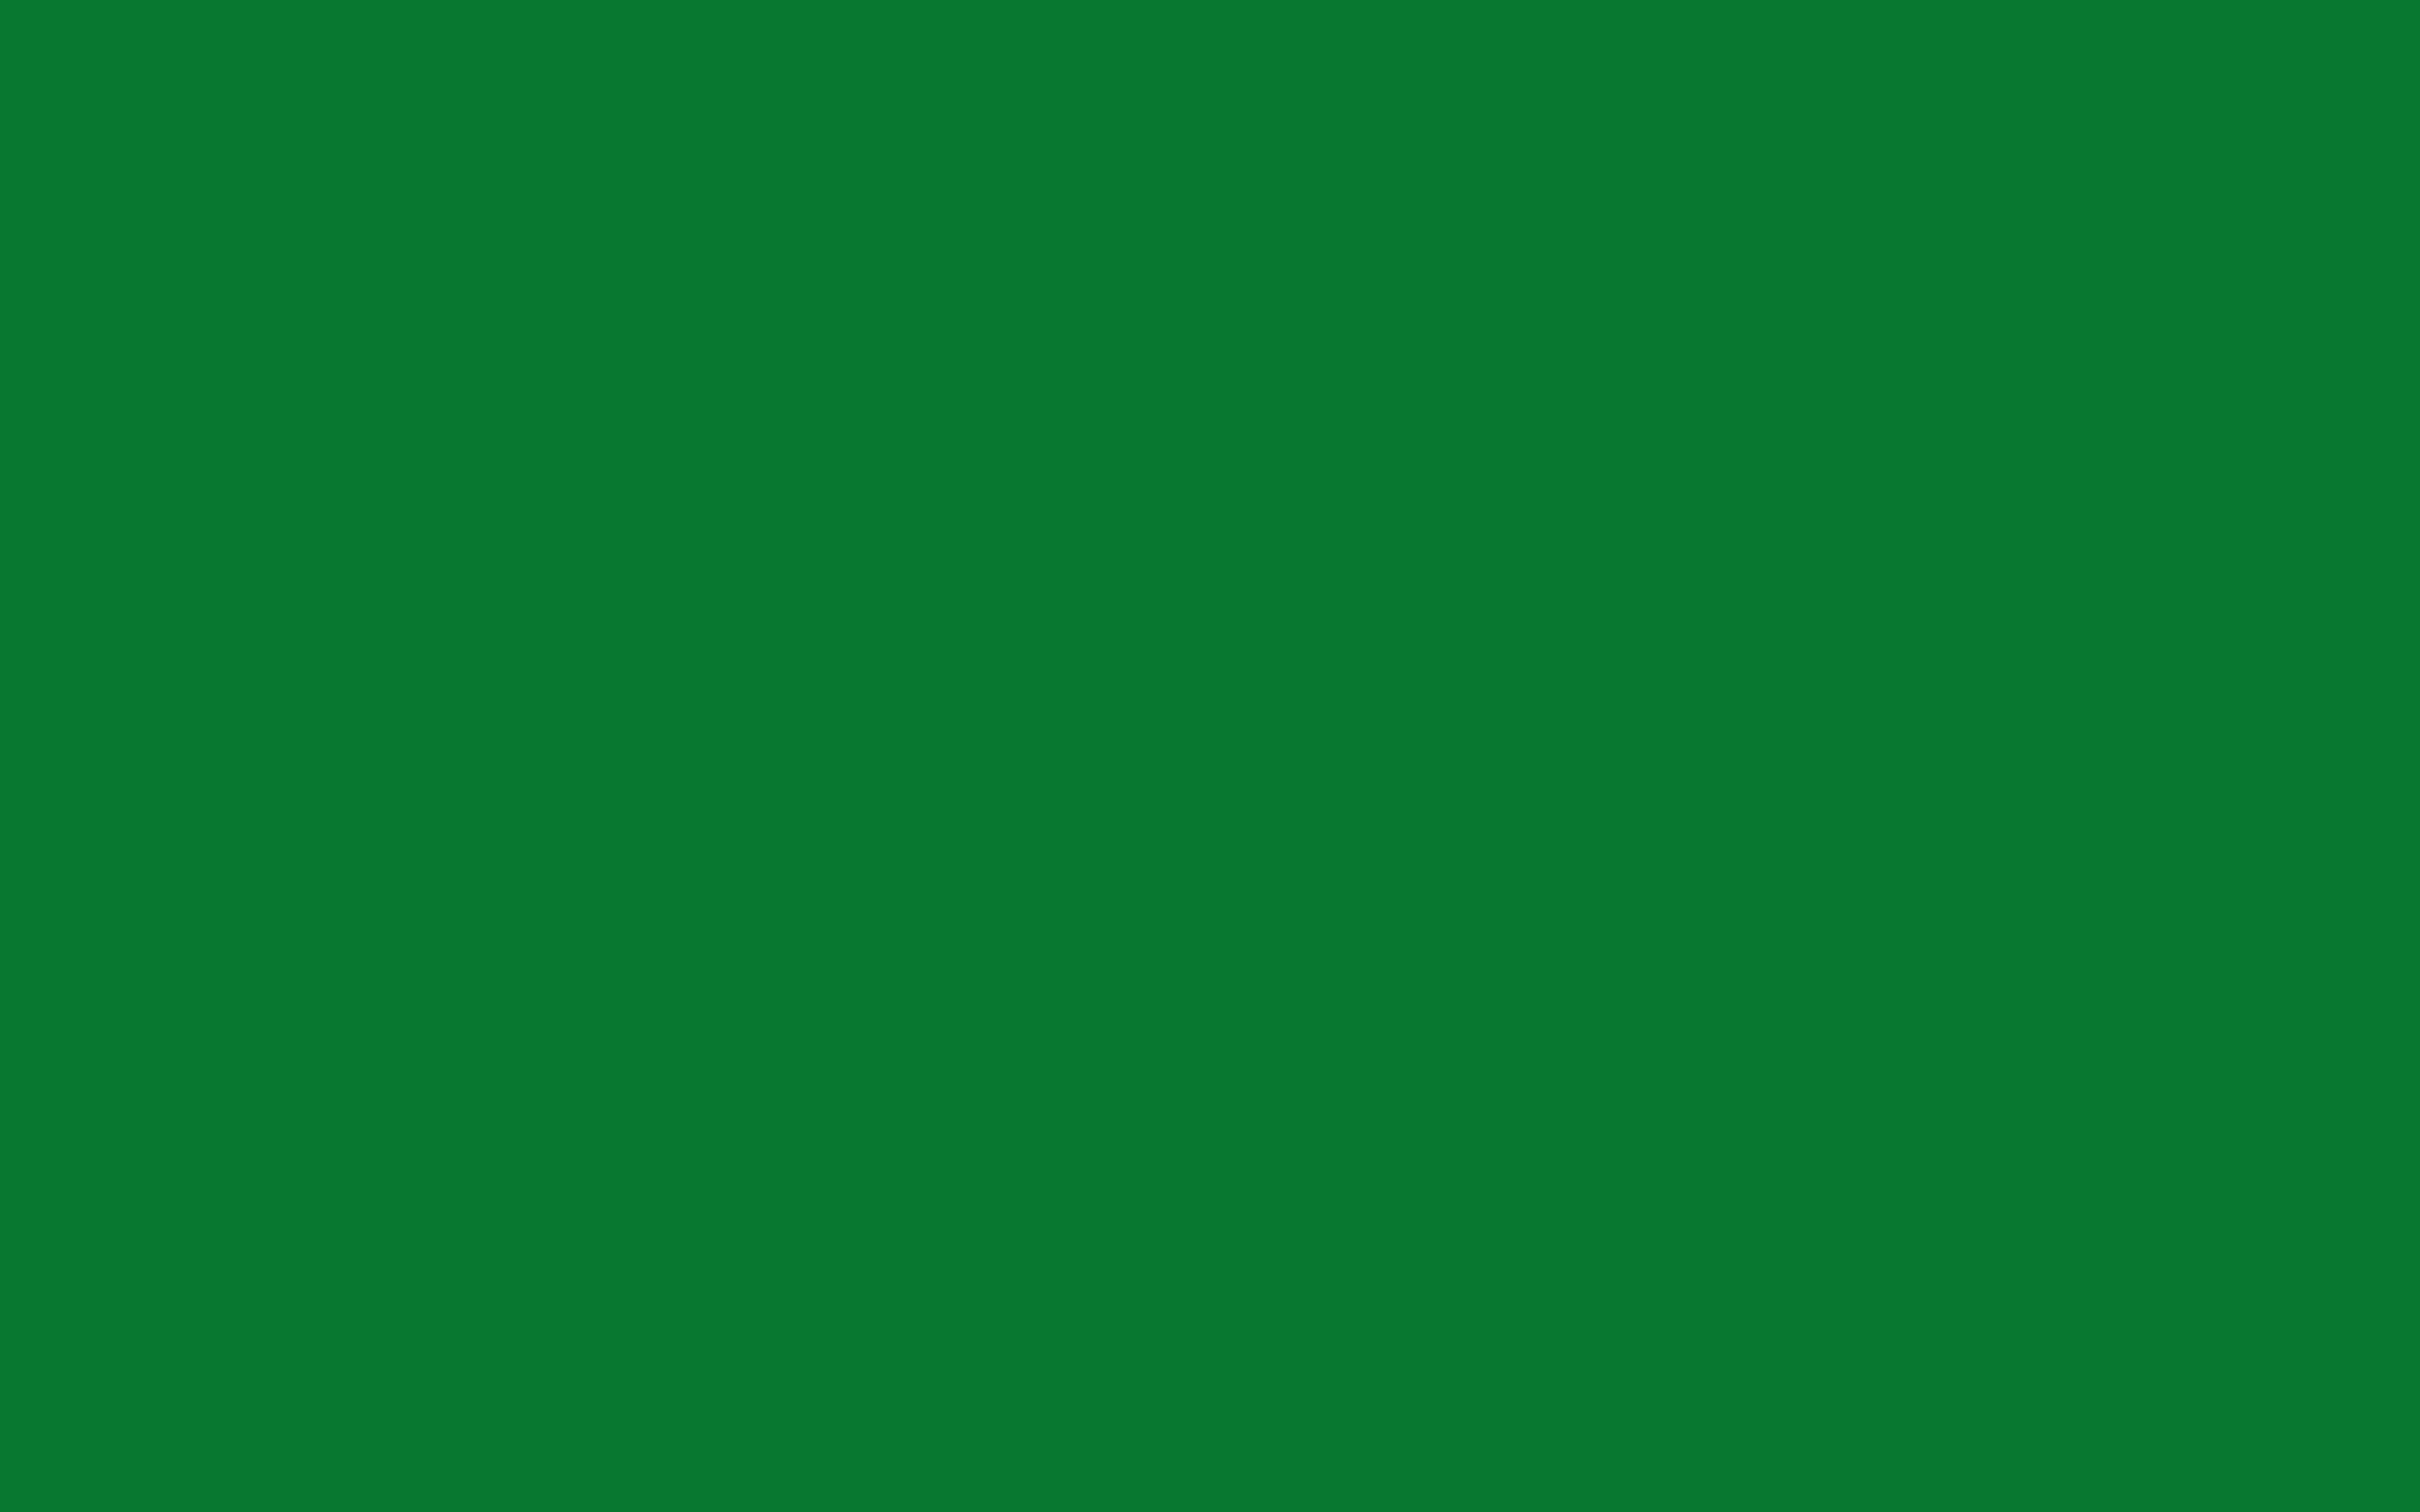 Green Color Wallpapers